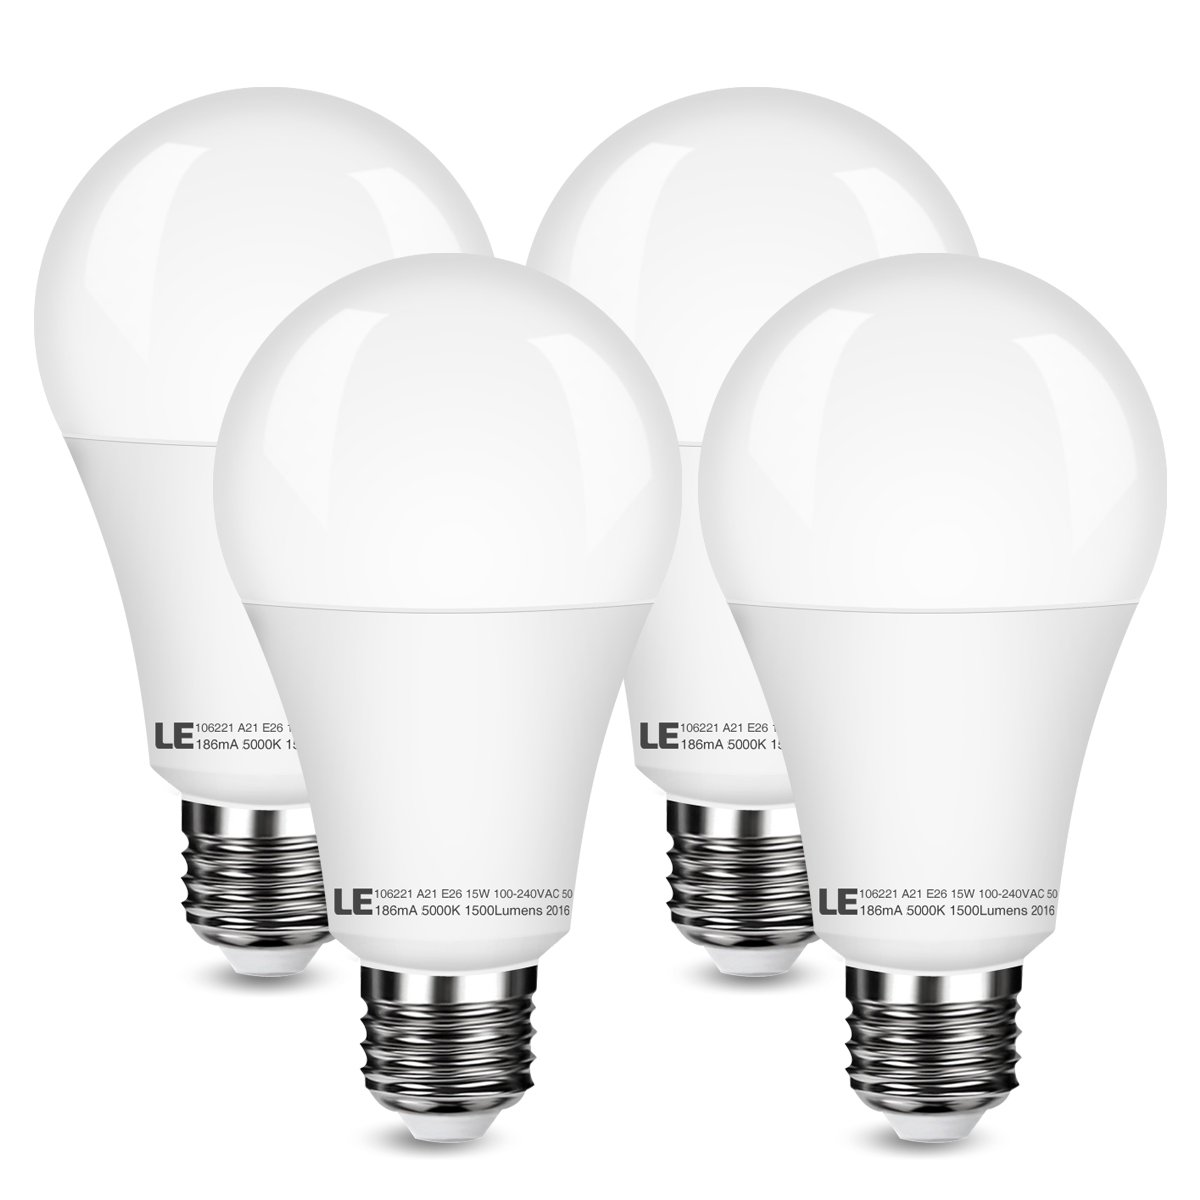 Top 20 best led light bulbs buyers guide 2016 2017 on for Led bulb buying guide